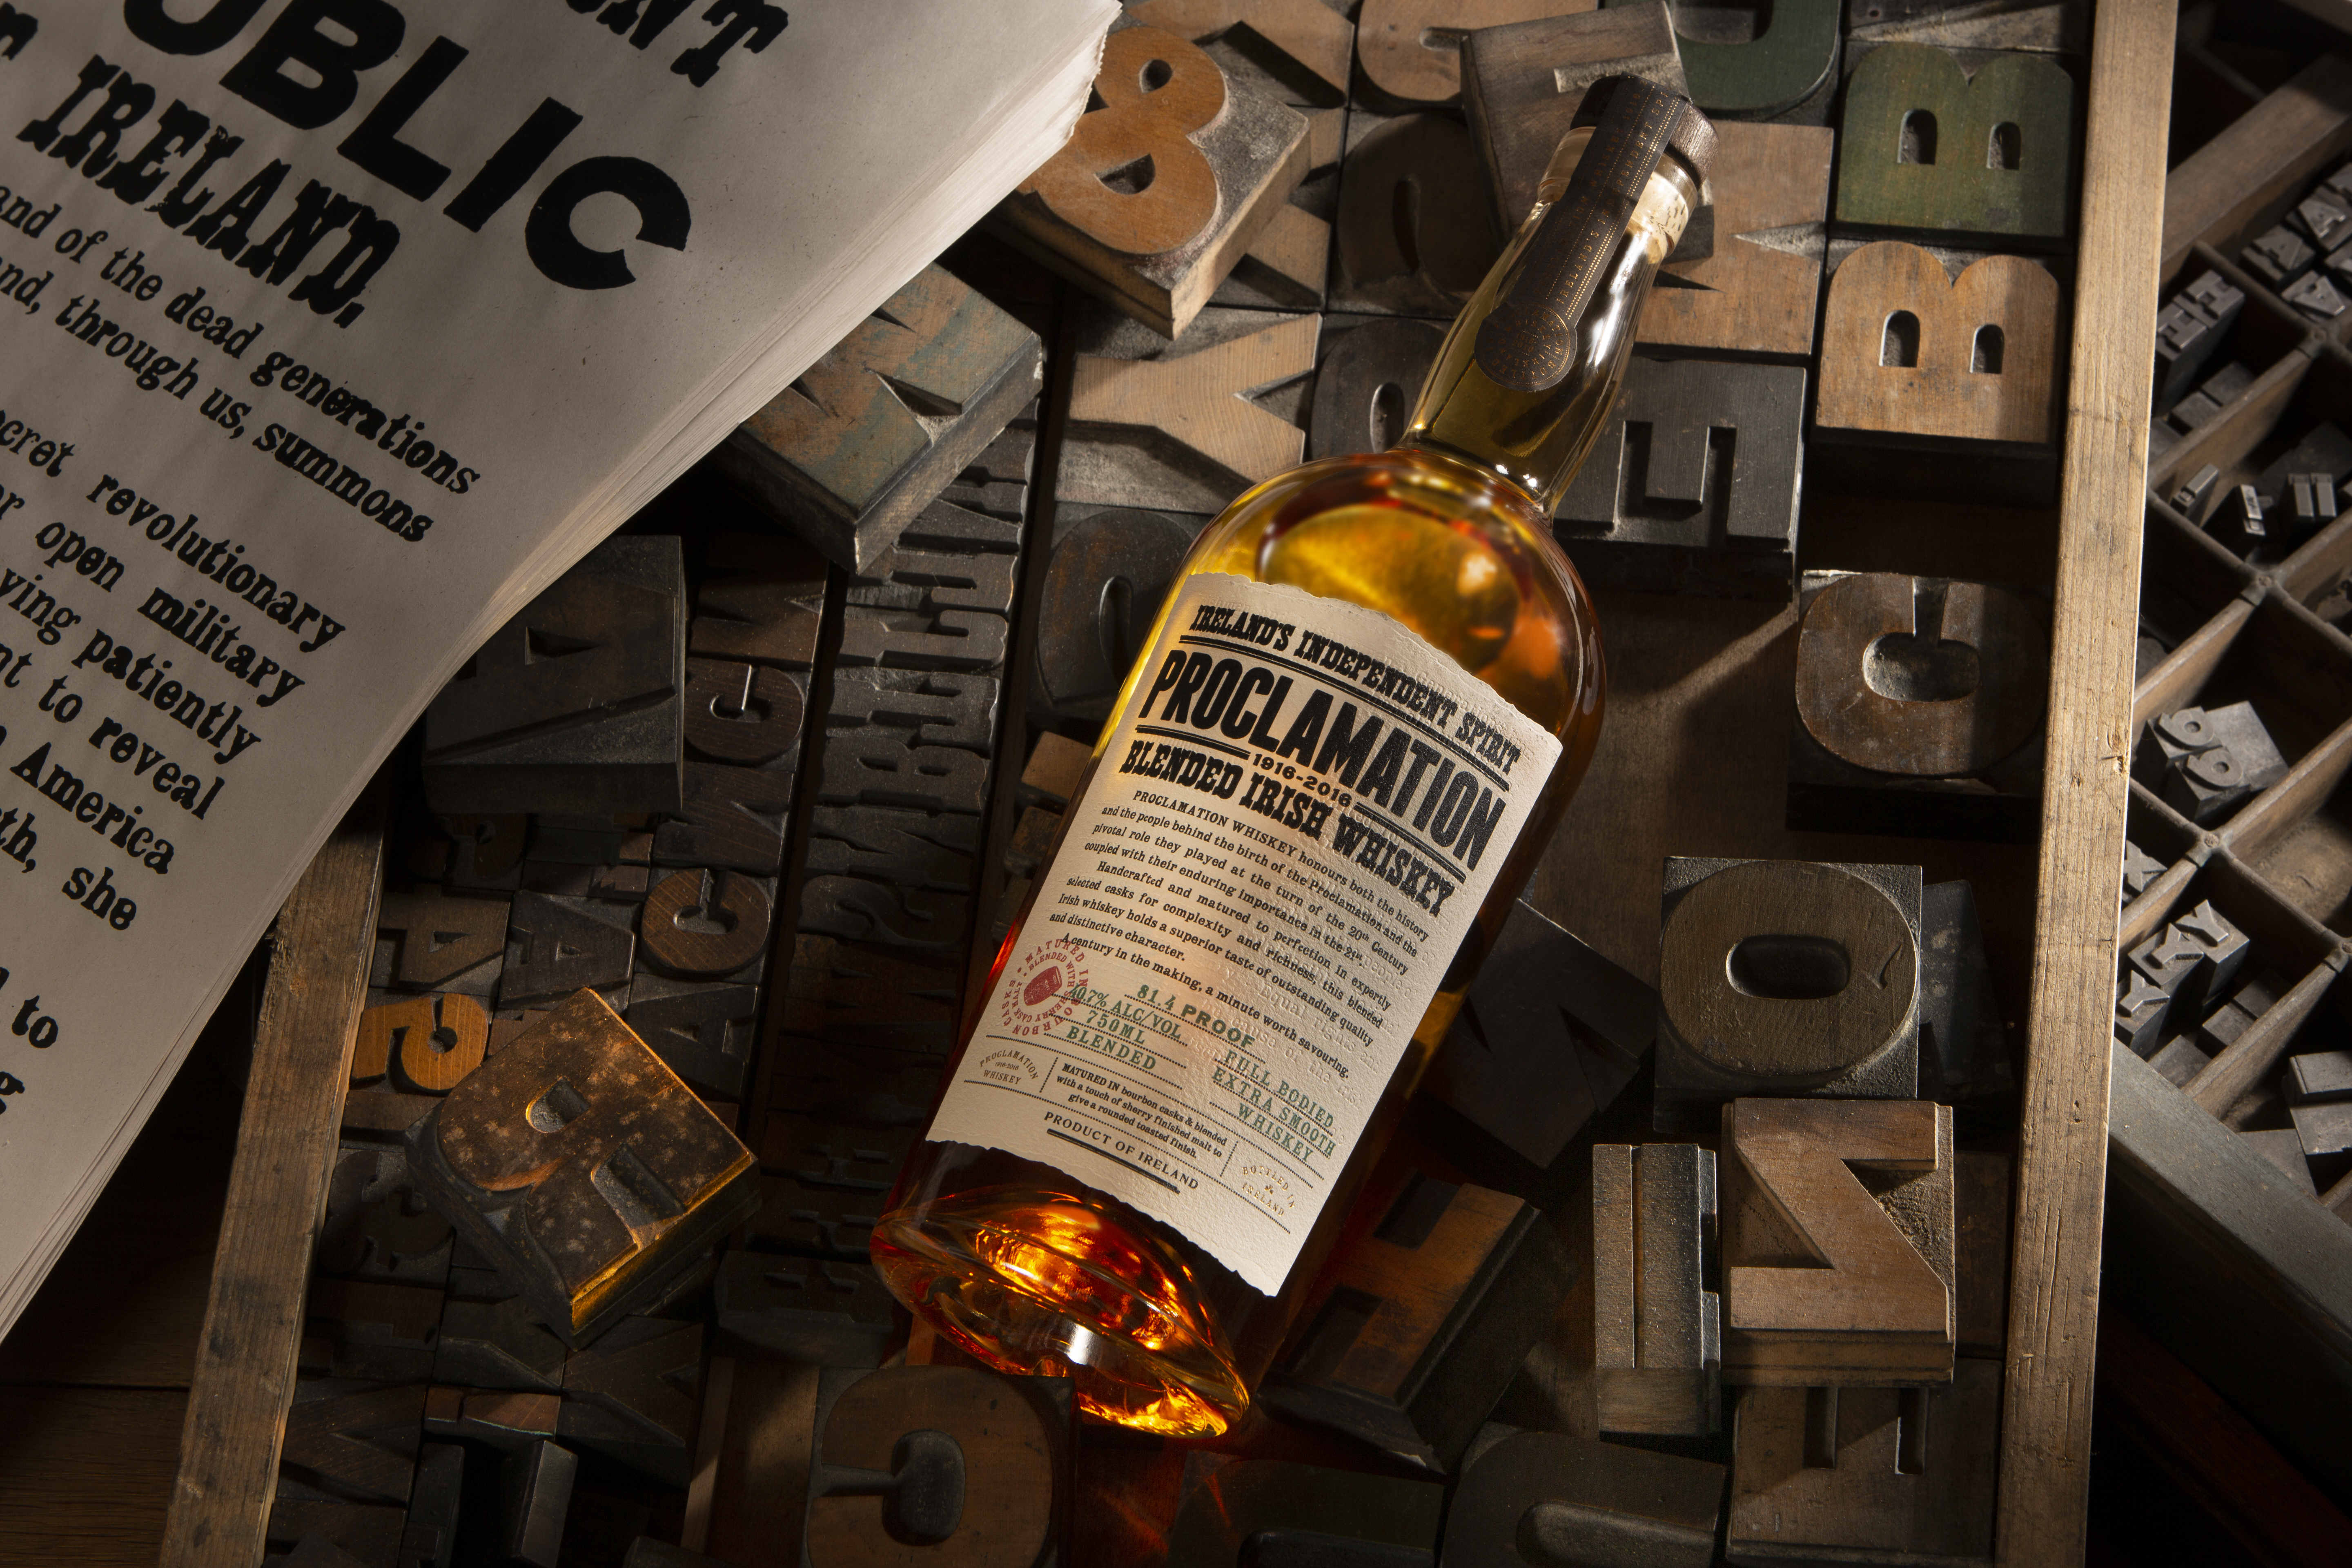 Proclamation whiskey bottle on top of printing materials